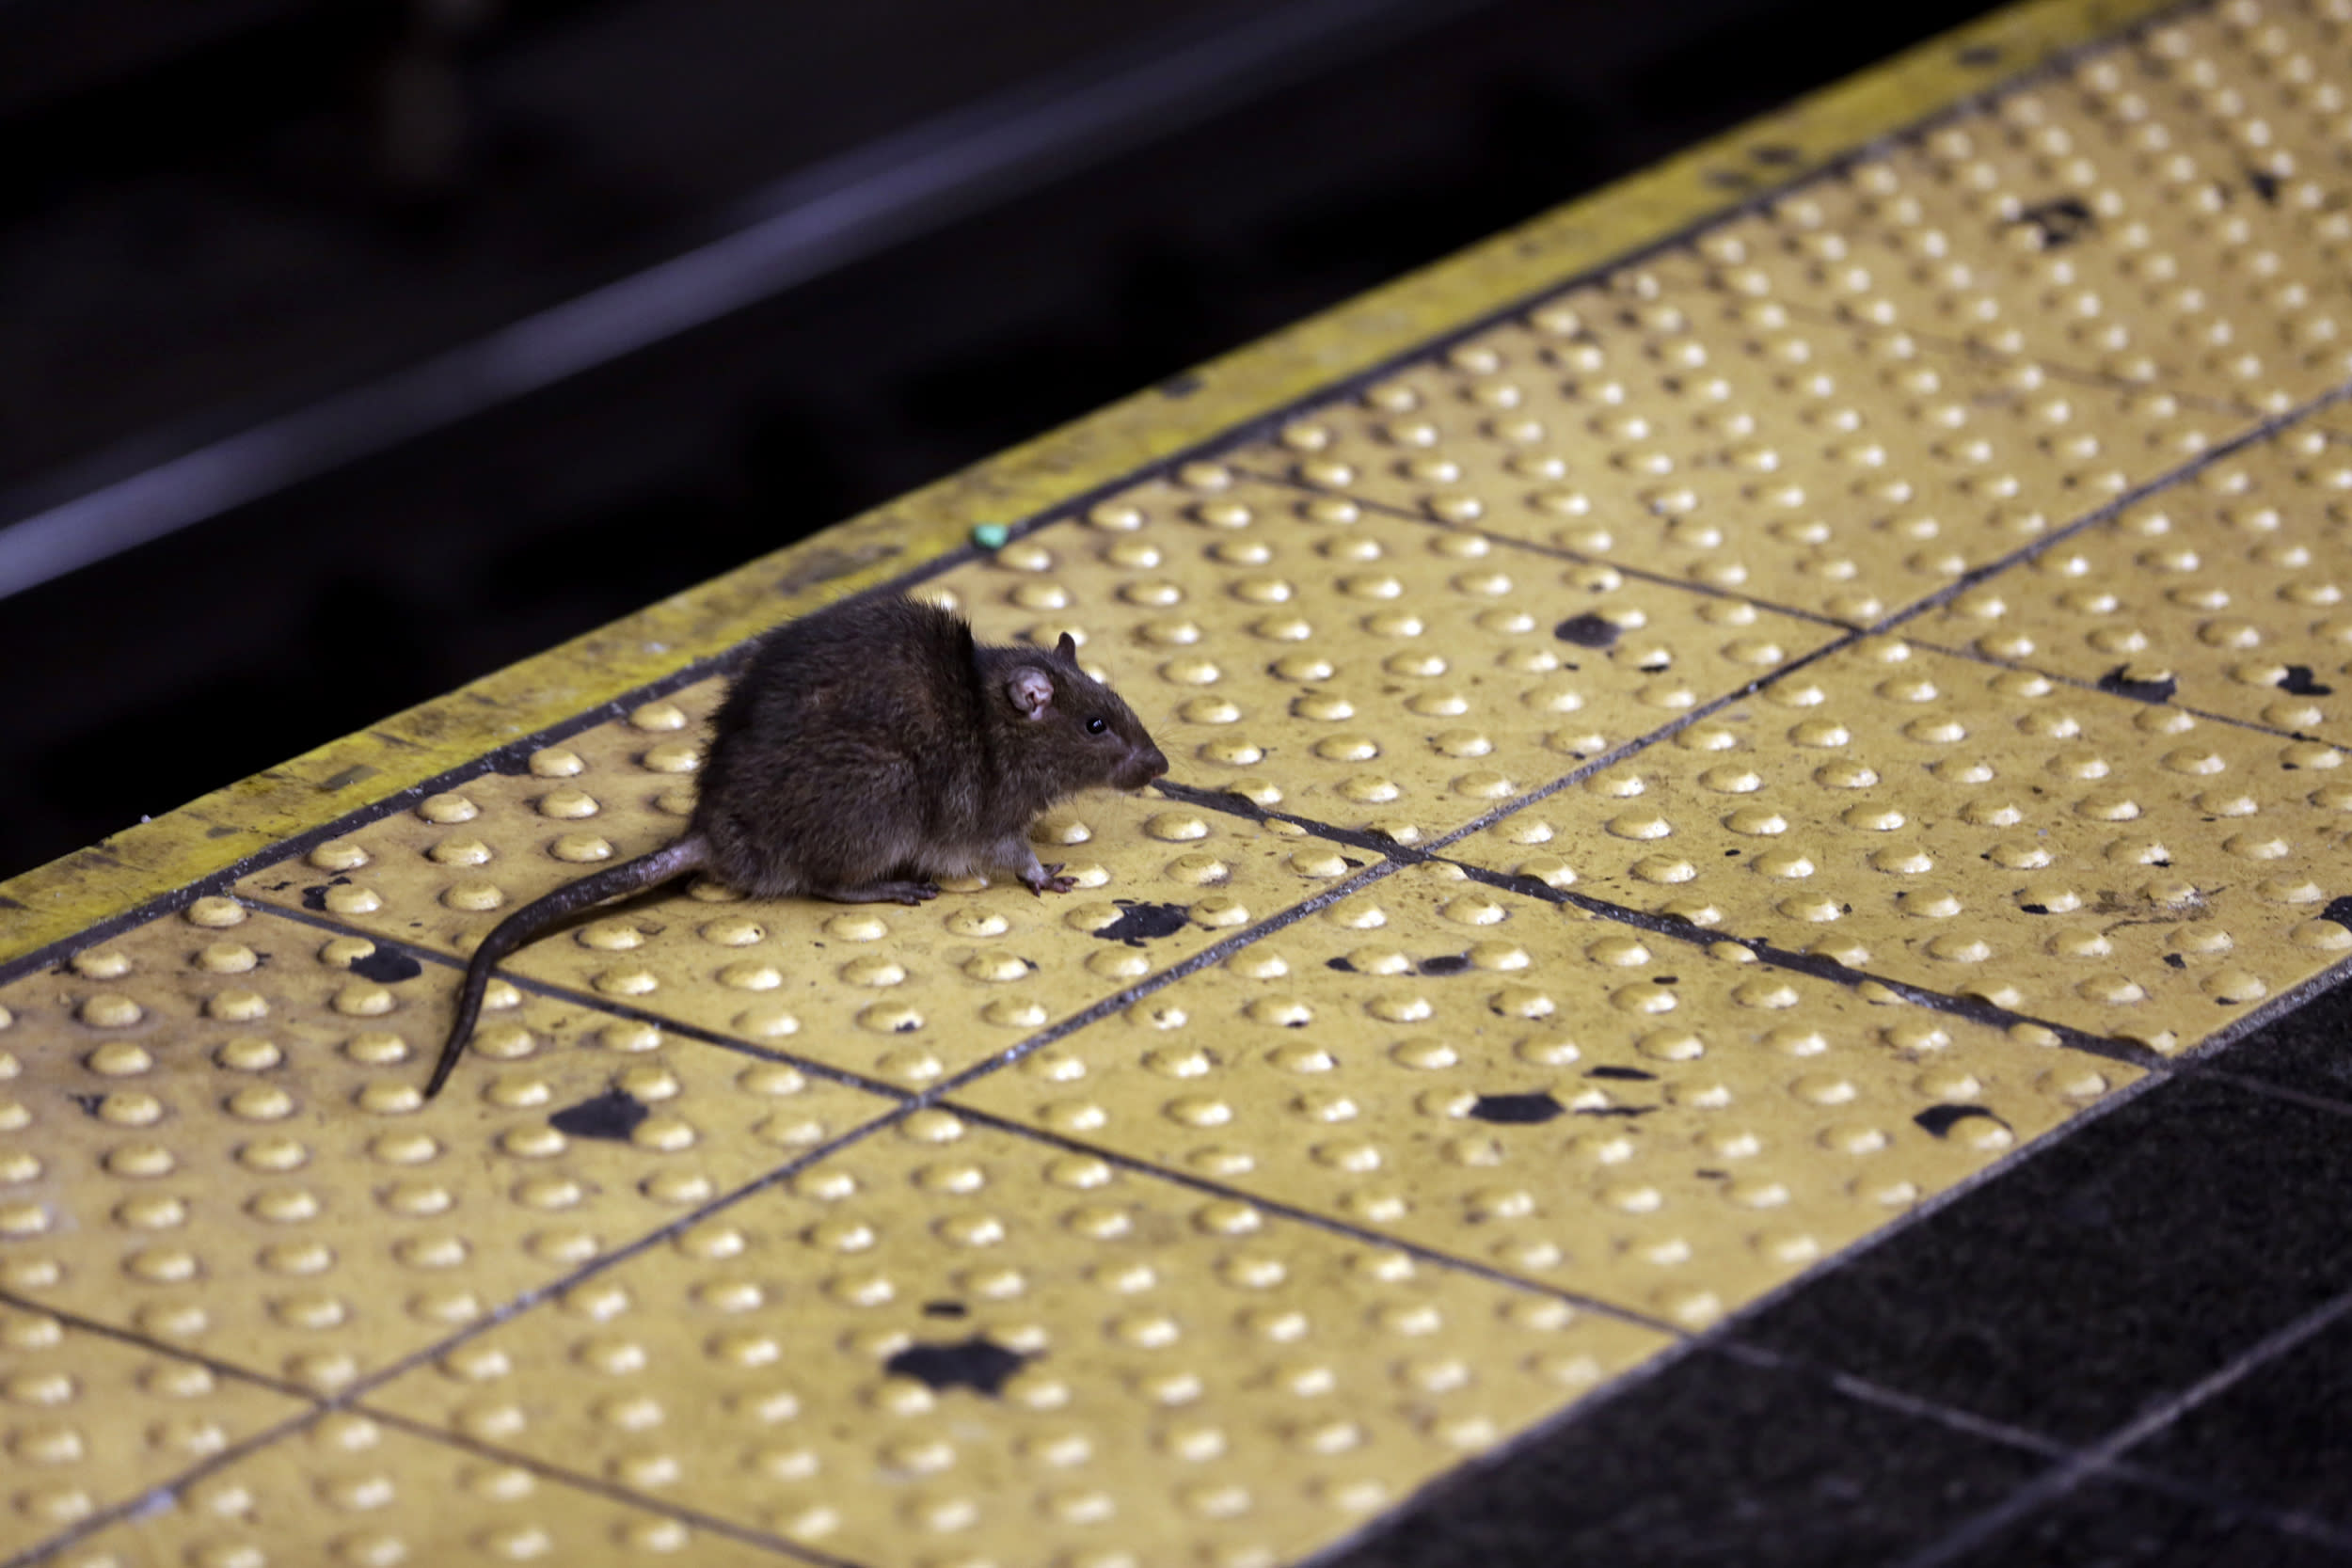 Starving, angry and cannibalistic: America's rats are getting desperate amid coronavirus pandemic